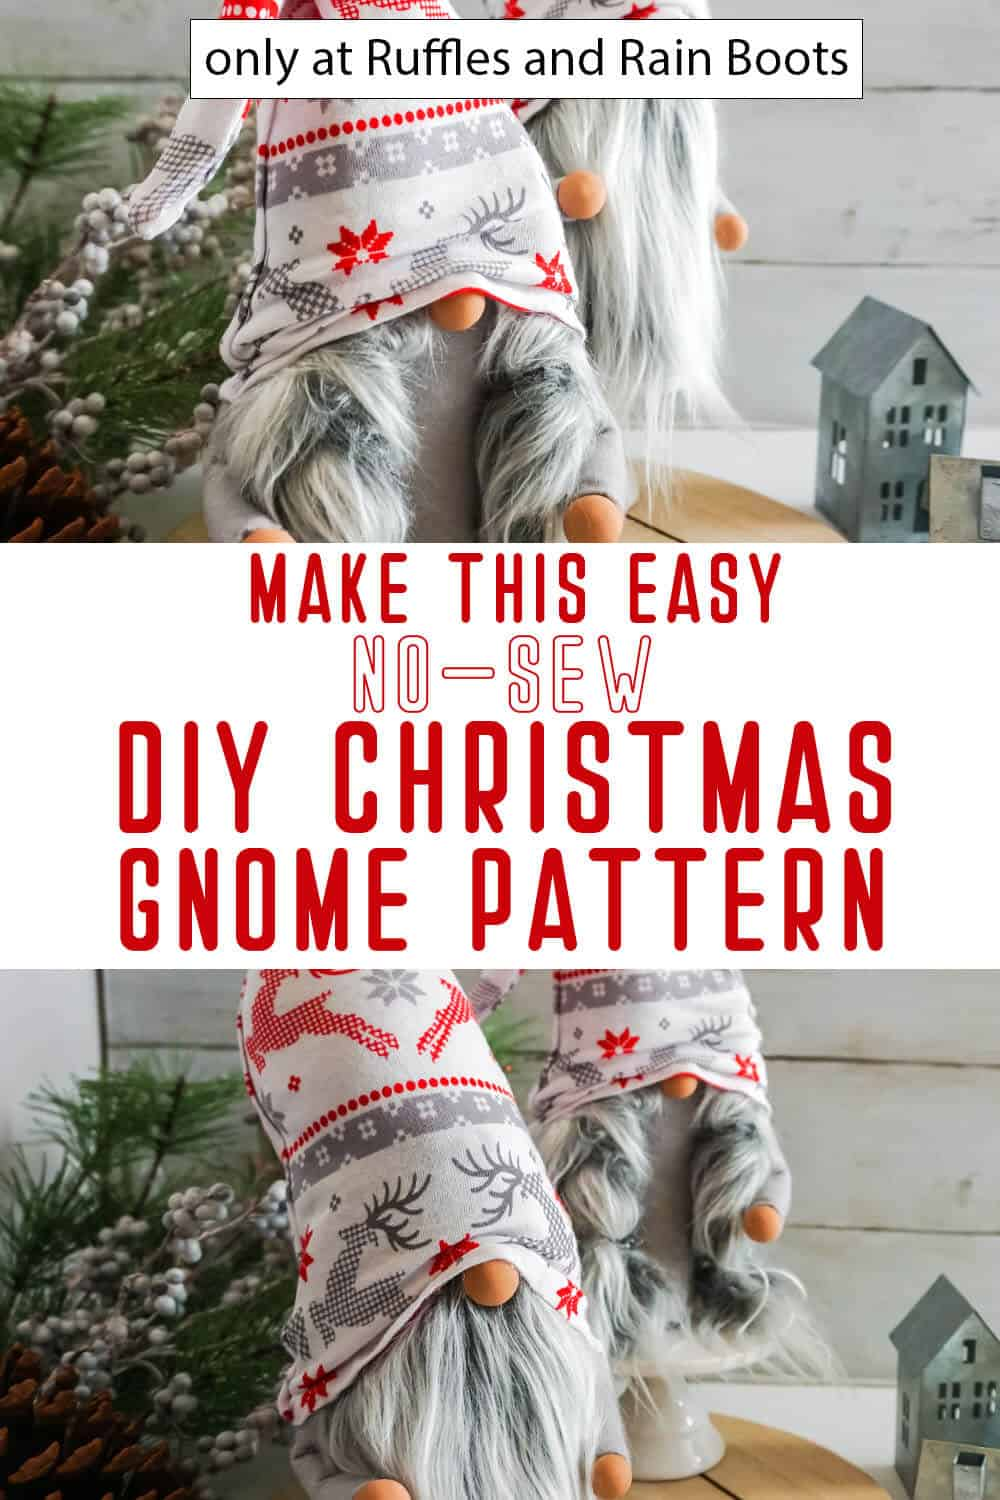 photo collage of easy no-sew diy scandinavian gnome pattern for christmas with text which reads make this easy no-sew diy christmas gnome pattern